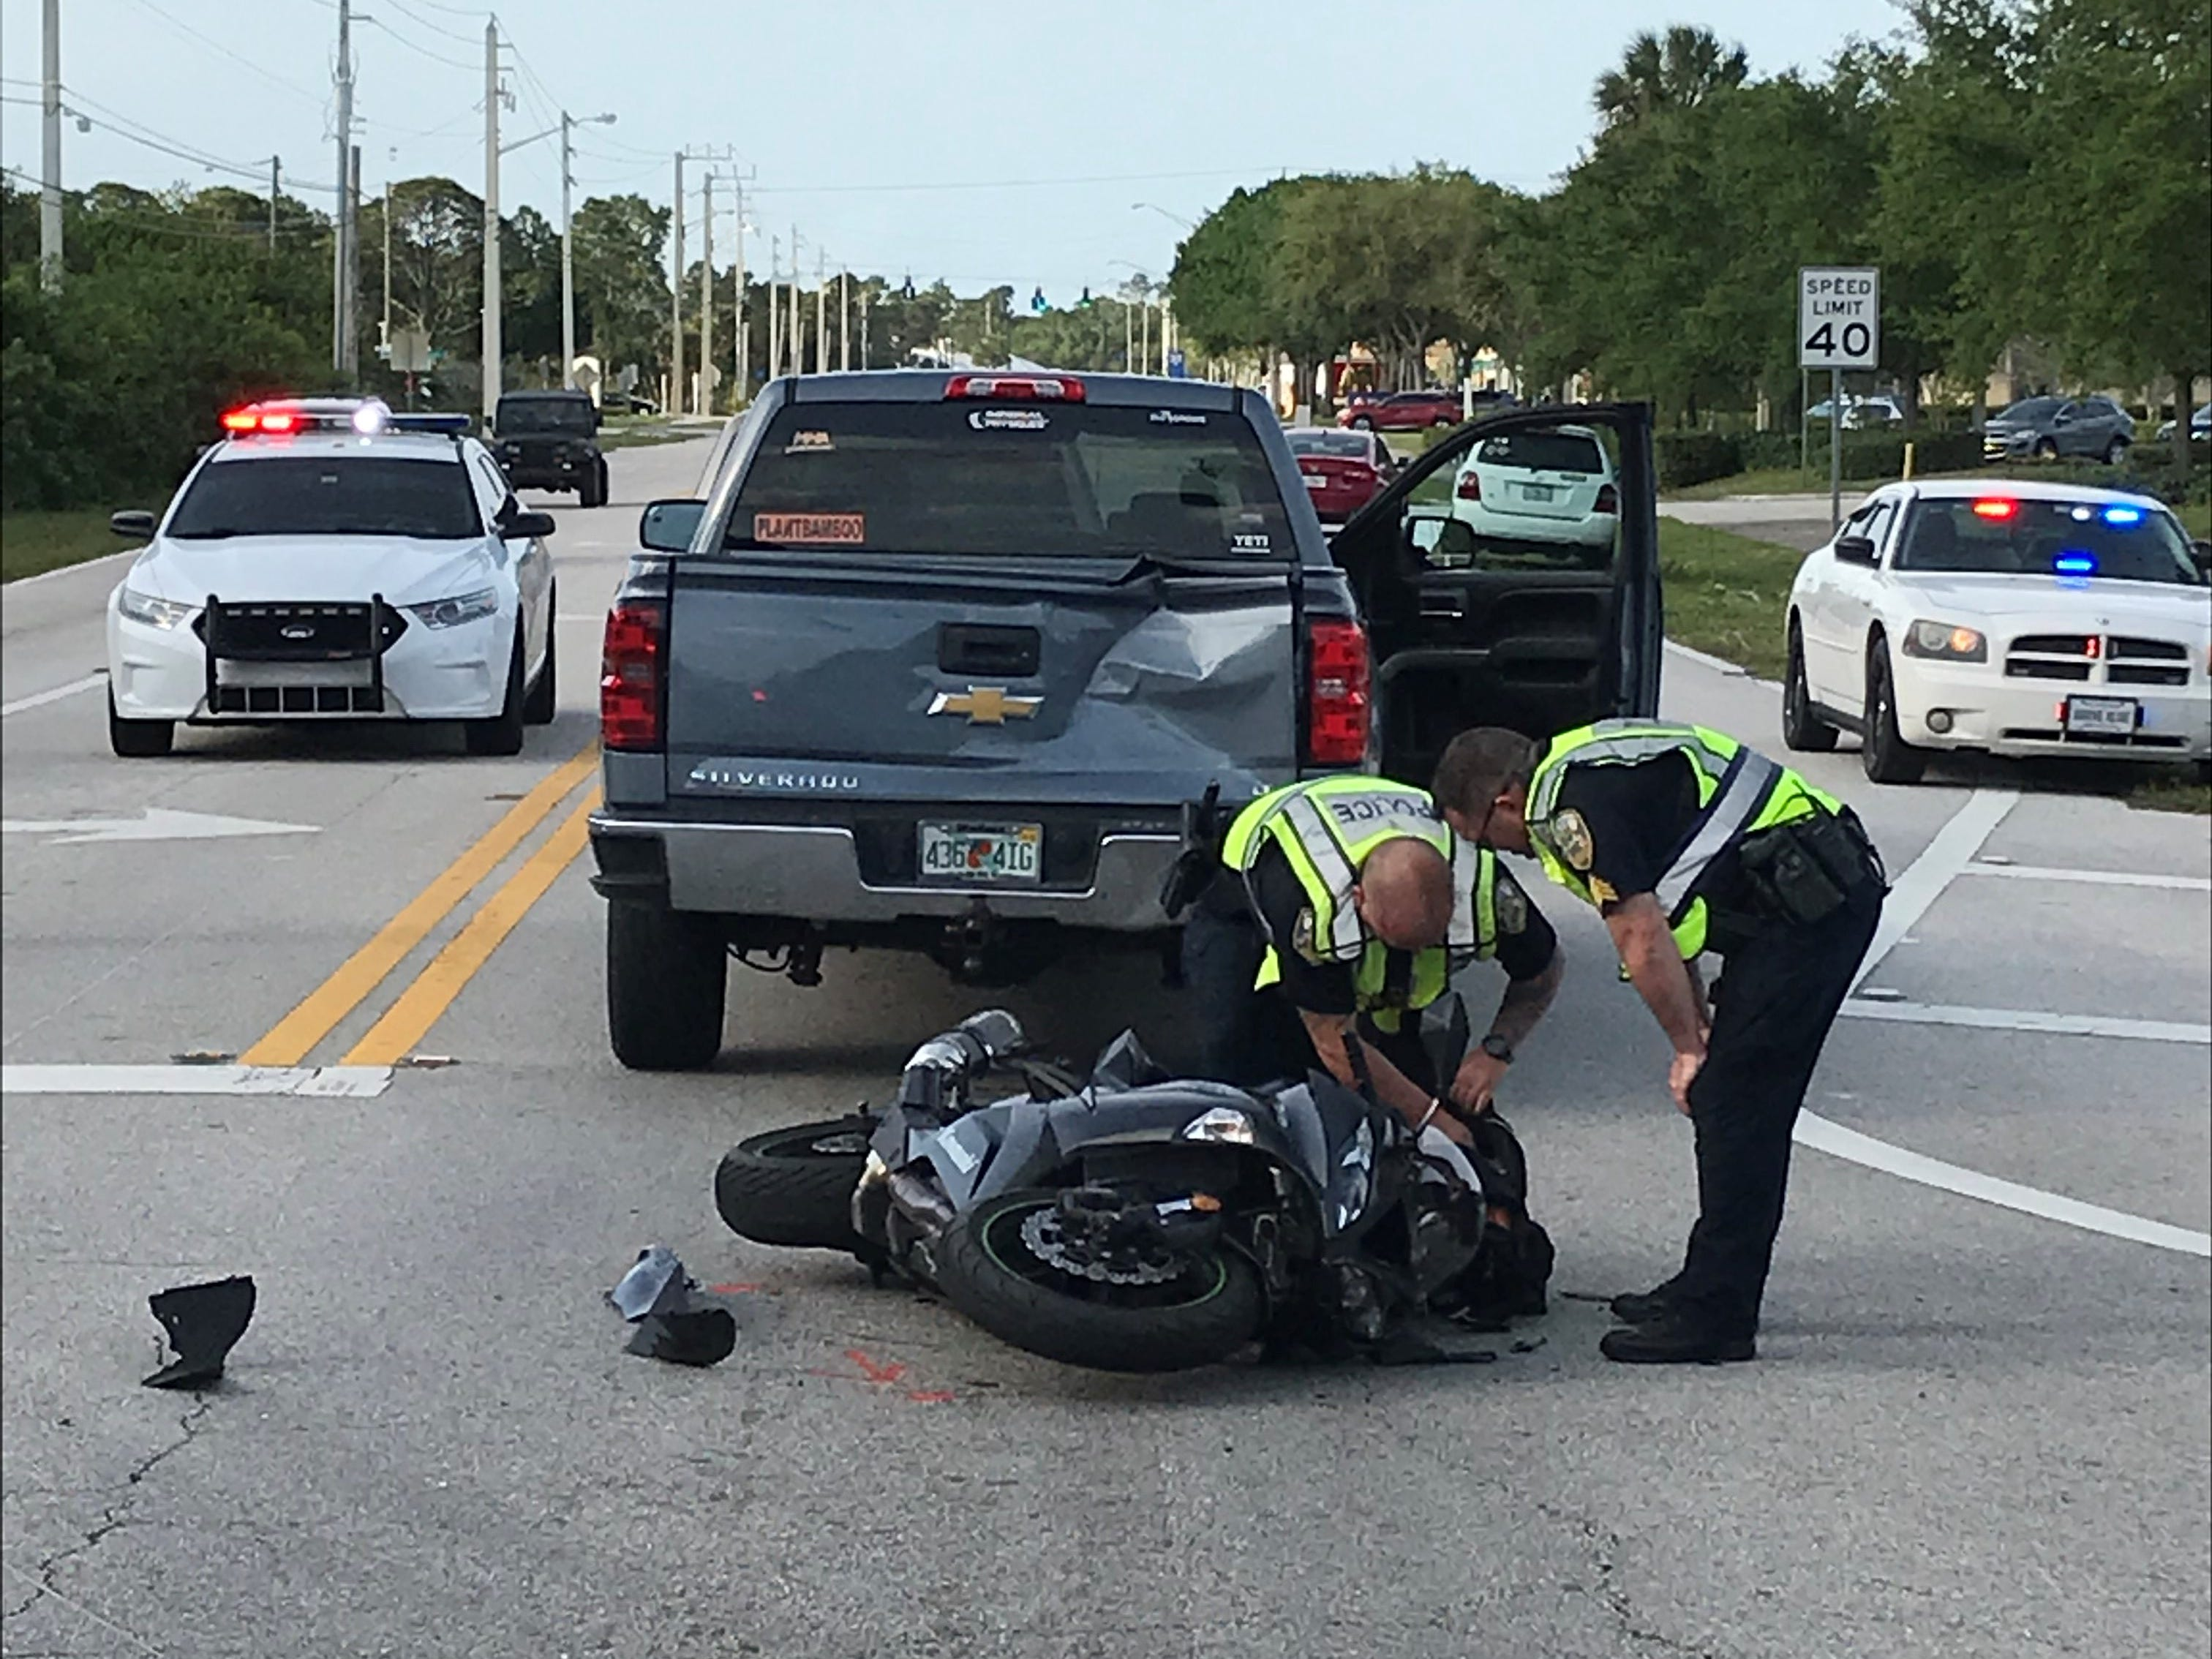 Port St. Lucie police work the scene of a crash that left a man with serious injuries Wednesday, March 13, 2019, at Southwest Tunis Avenue and Southwest Port St. Lucie Boulevard.